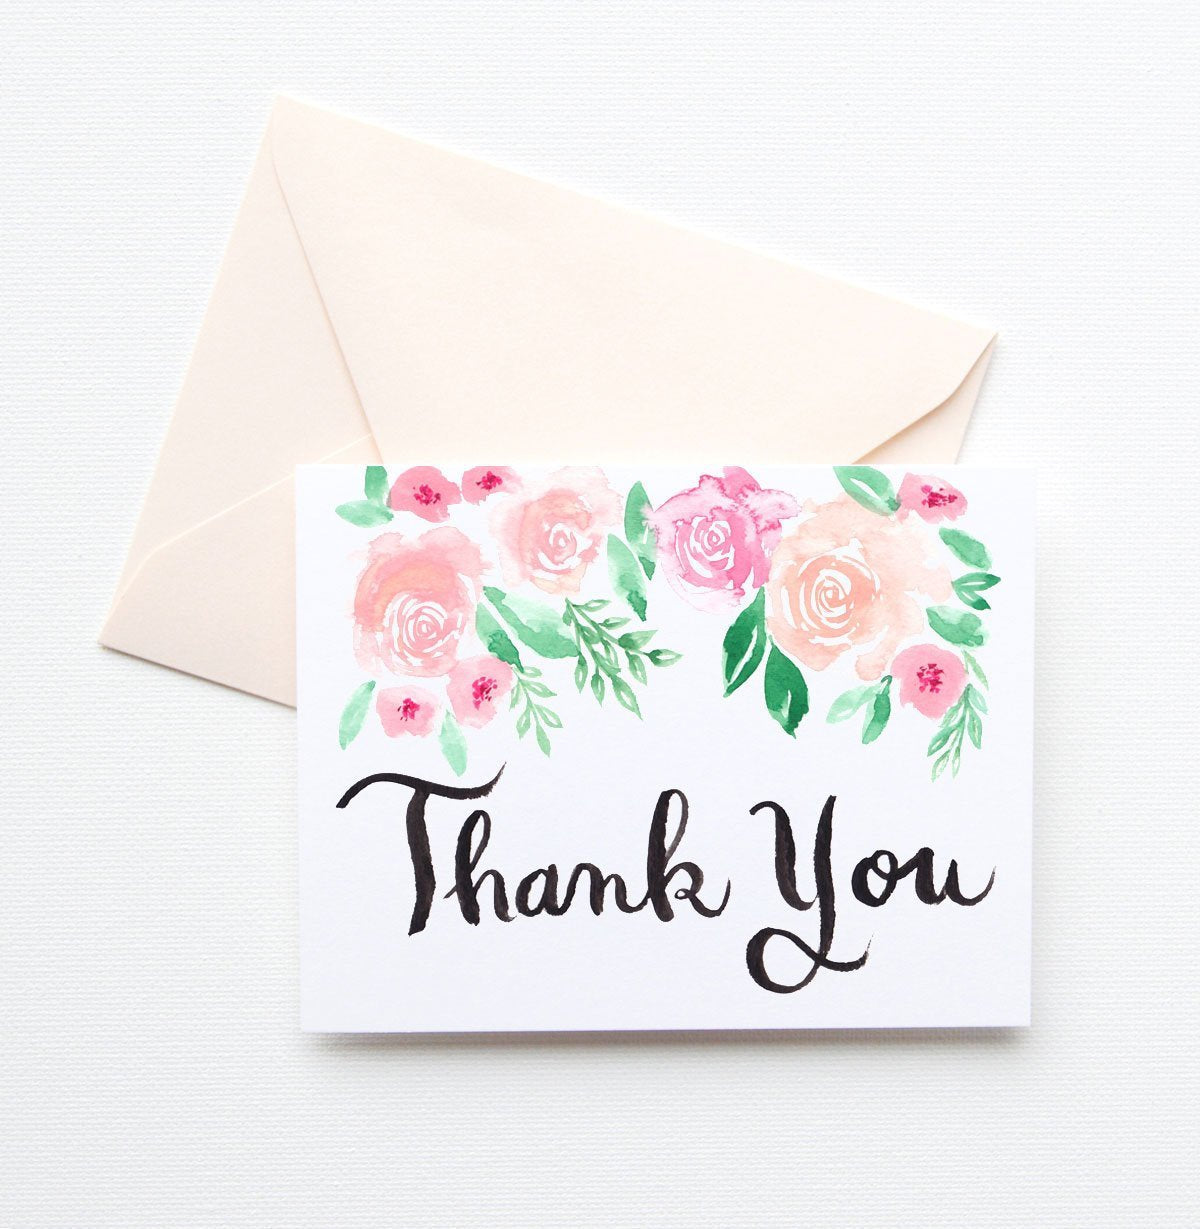 SPRING HAS SPRUNG THANK YOU CARD SET